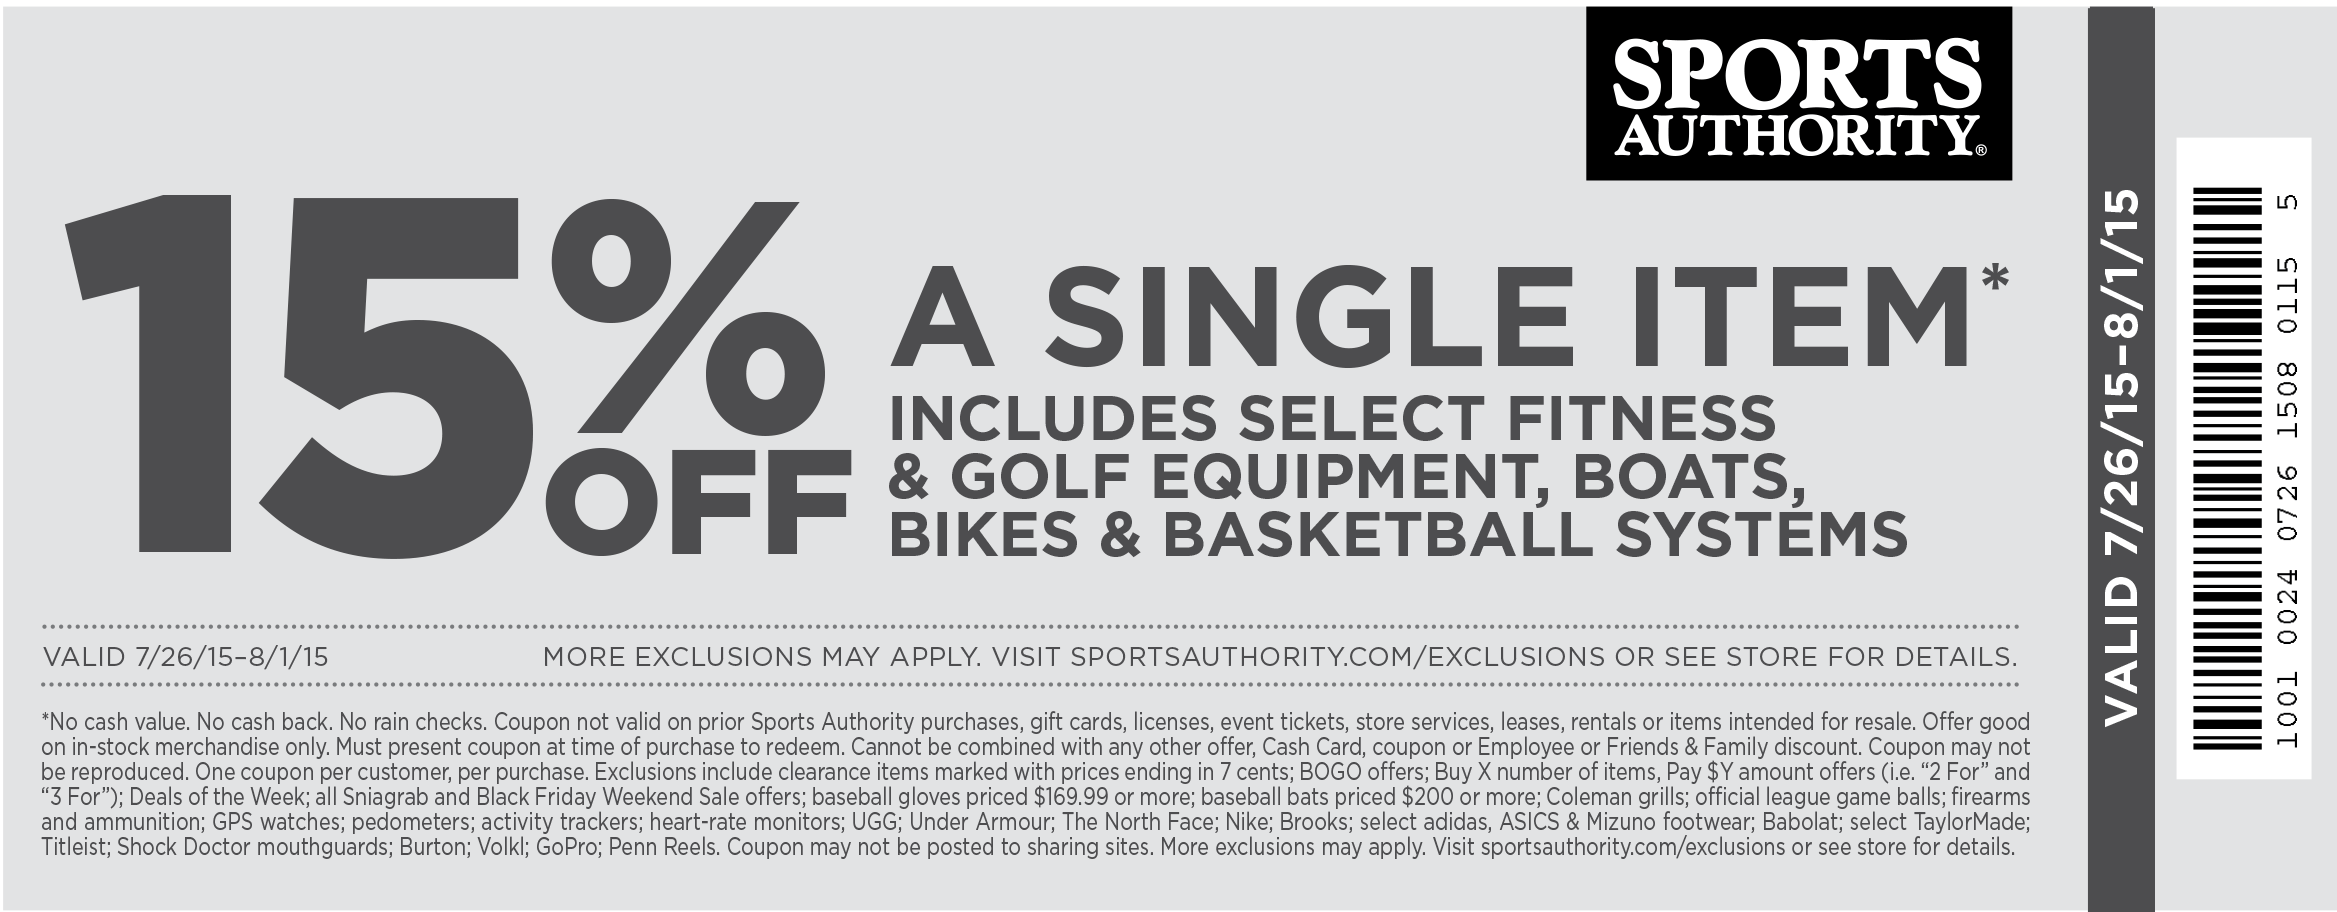 Sports Authority Coupon January 2017 15% off a single item at Sports Authority